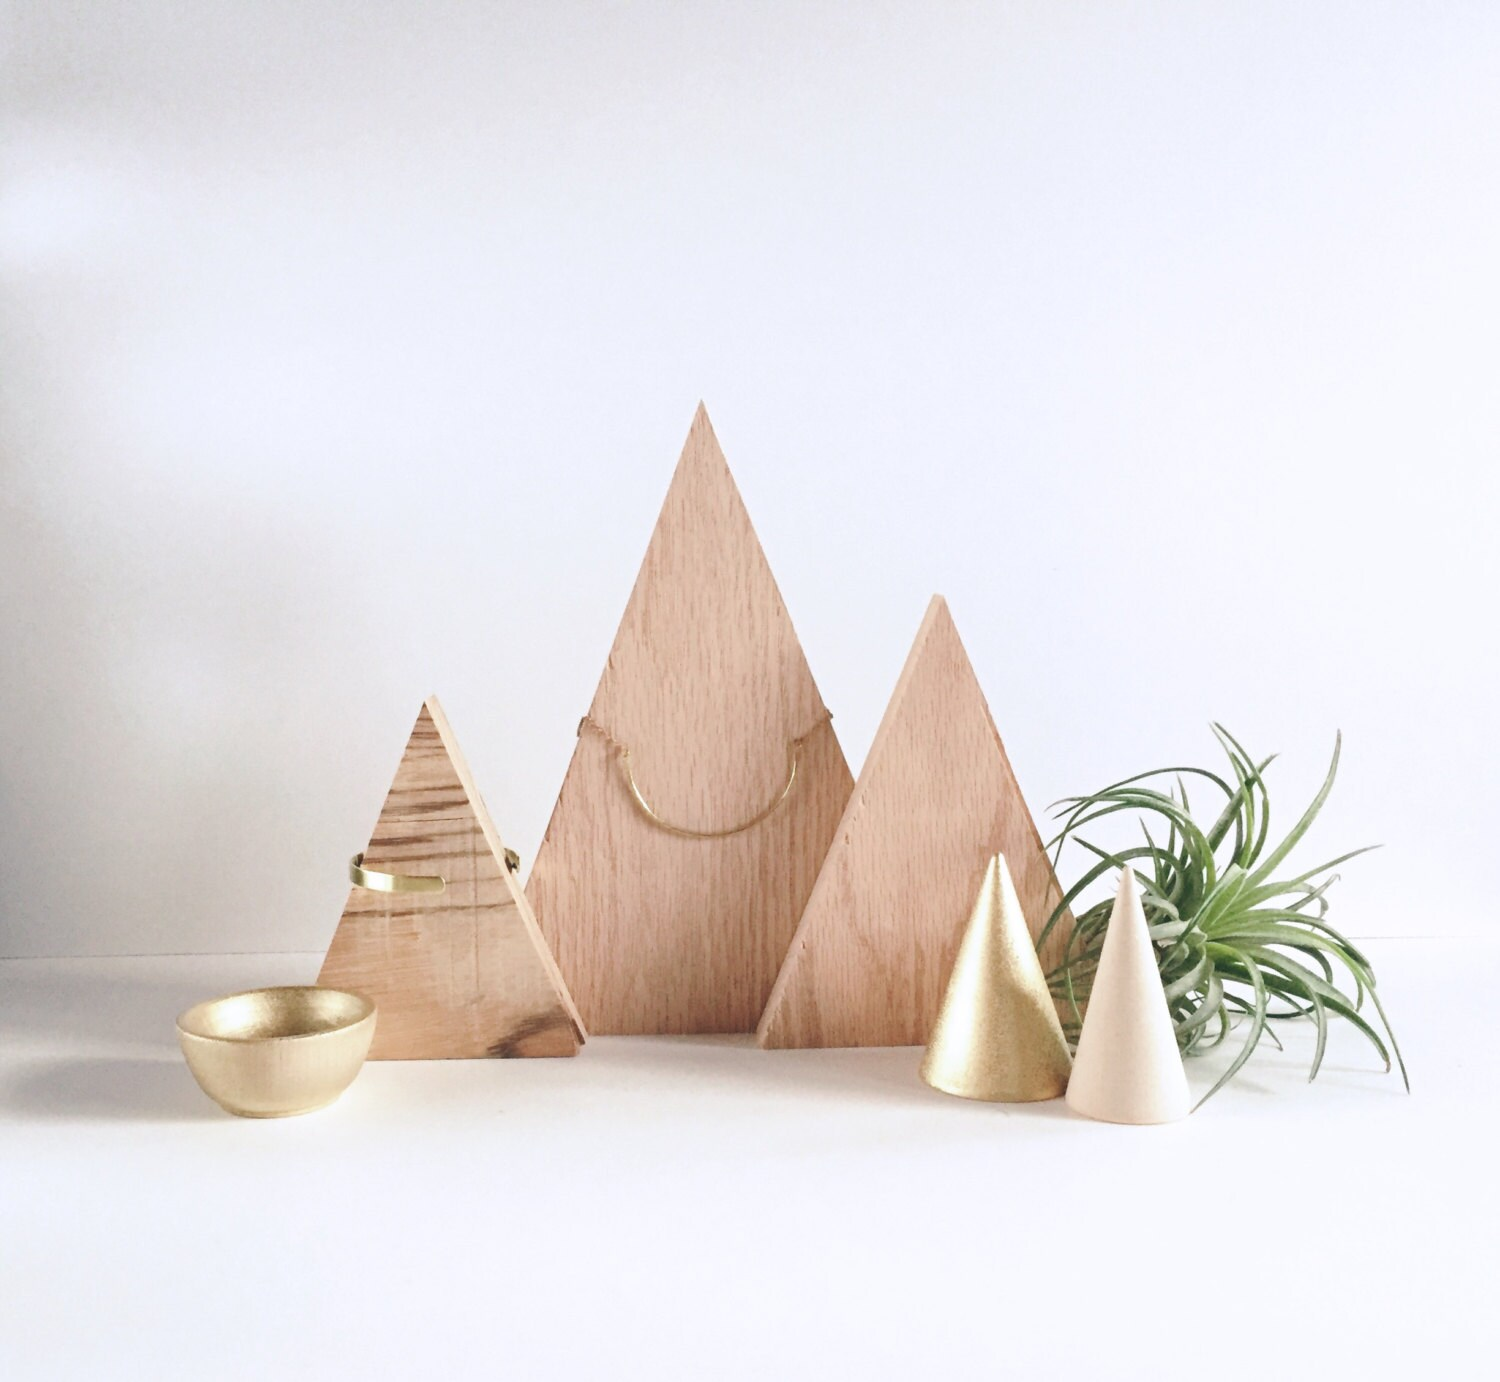 wood triangle necklace display minimal design jewelry, Presentation templates